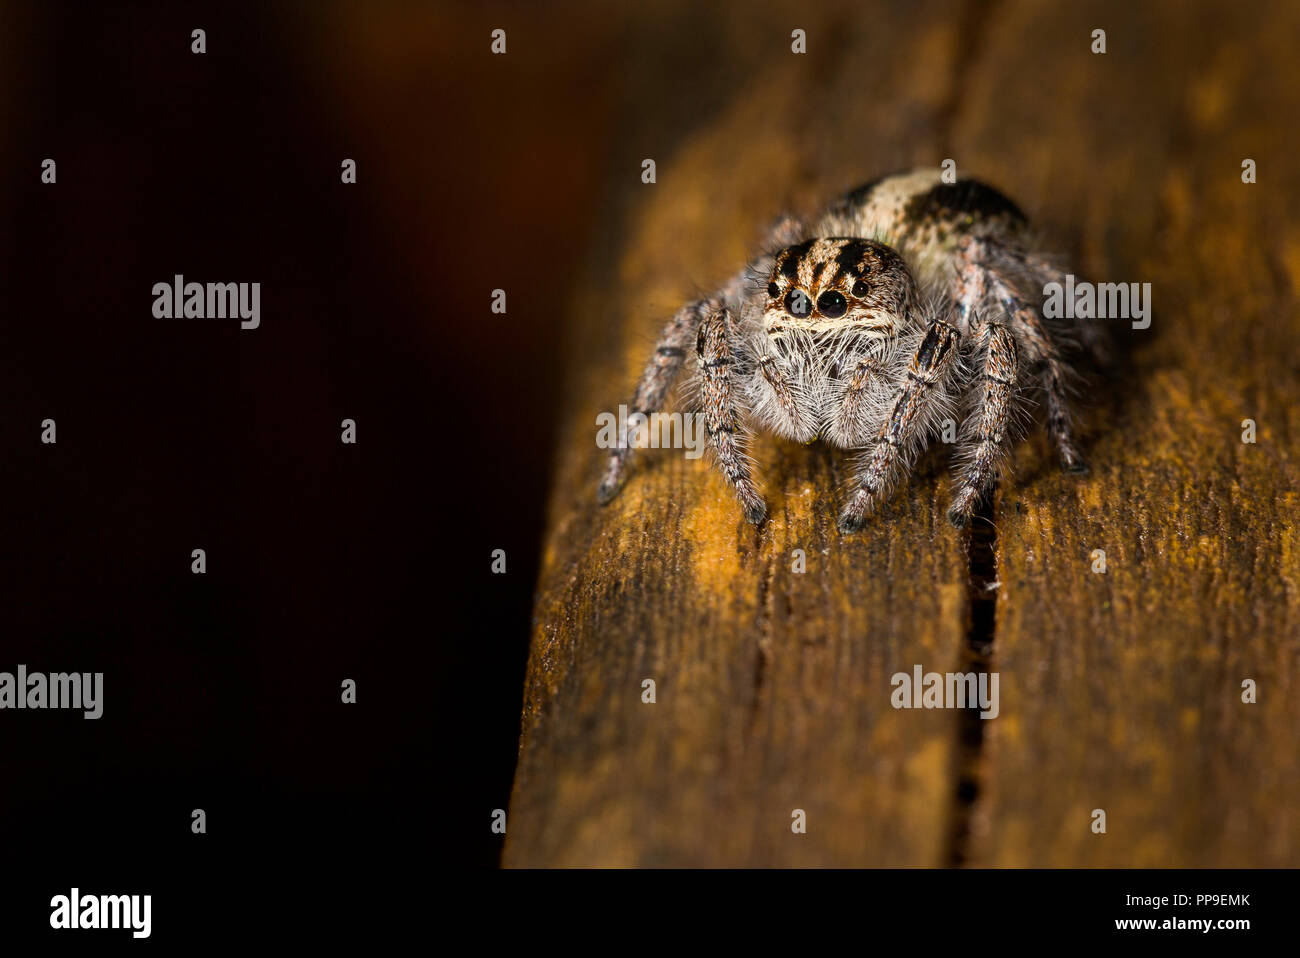 A beautiful jumping spider photographed in the Misiones province of Argentina - Stock Image